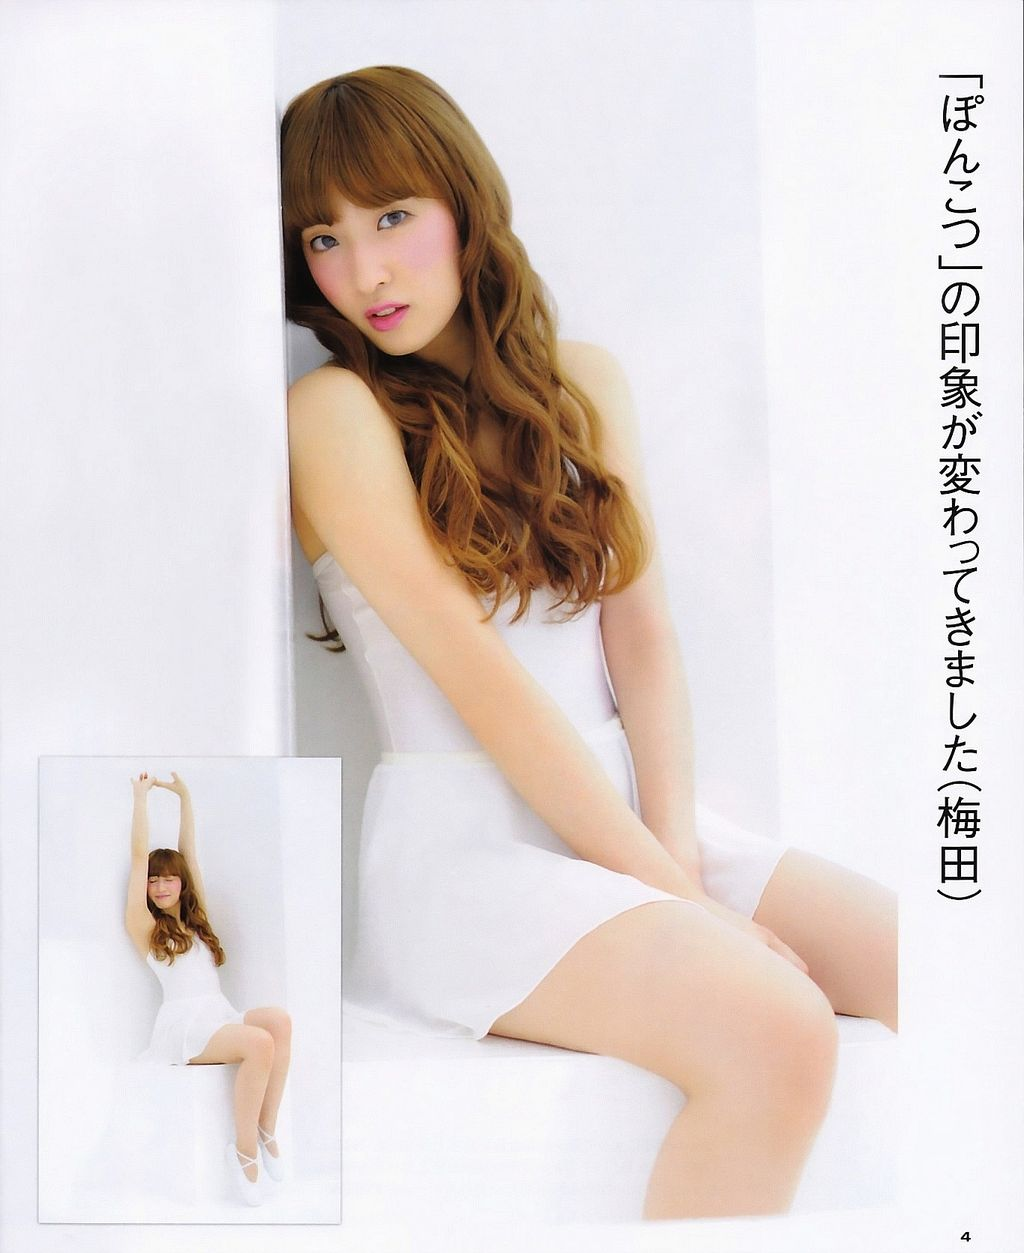 Index of ls-magazine models